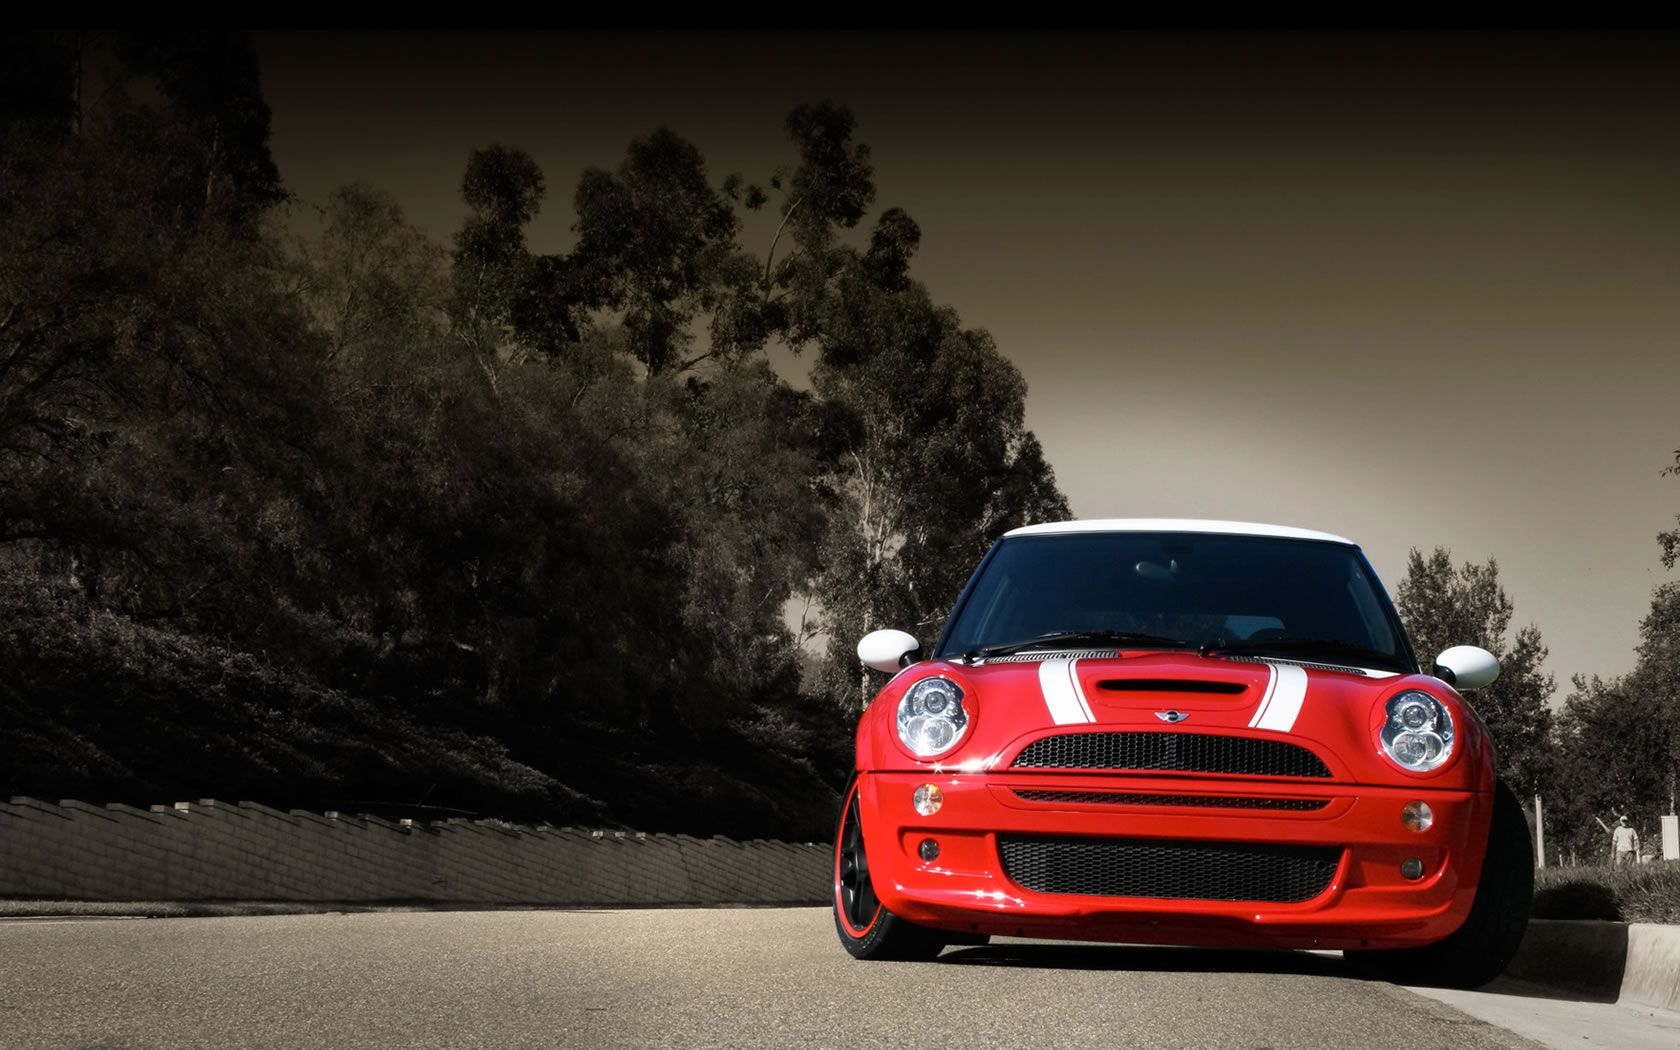 2013 Red Race Mini Cooper Red Car Hd Wallpaper Oyeahhhh